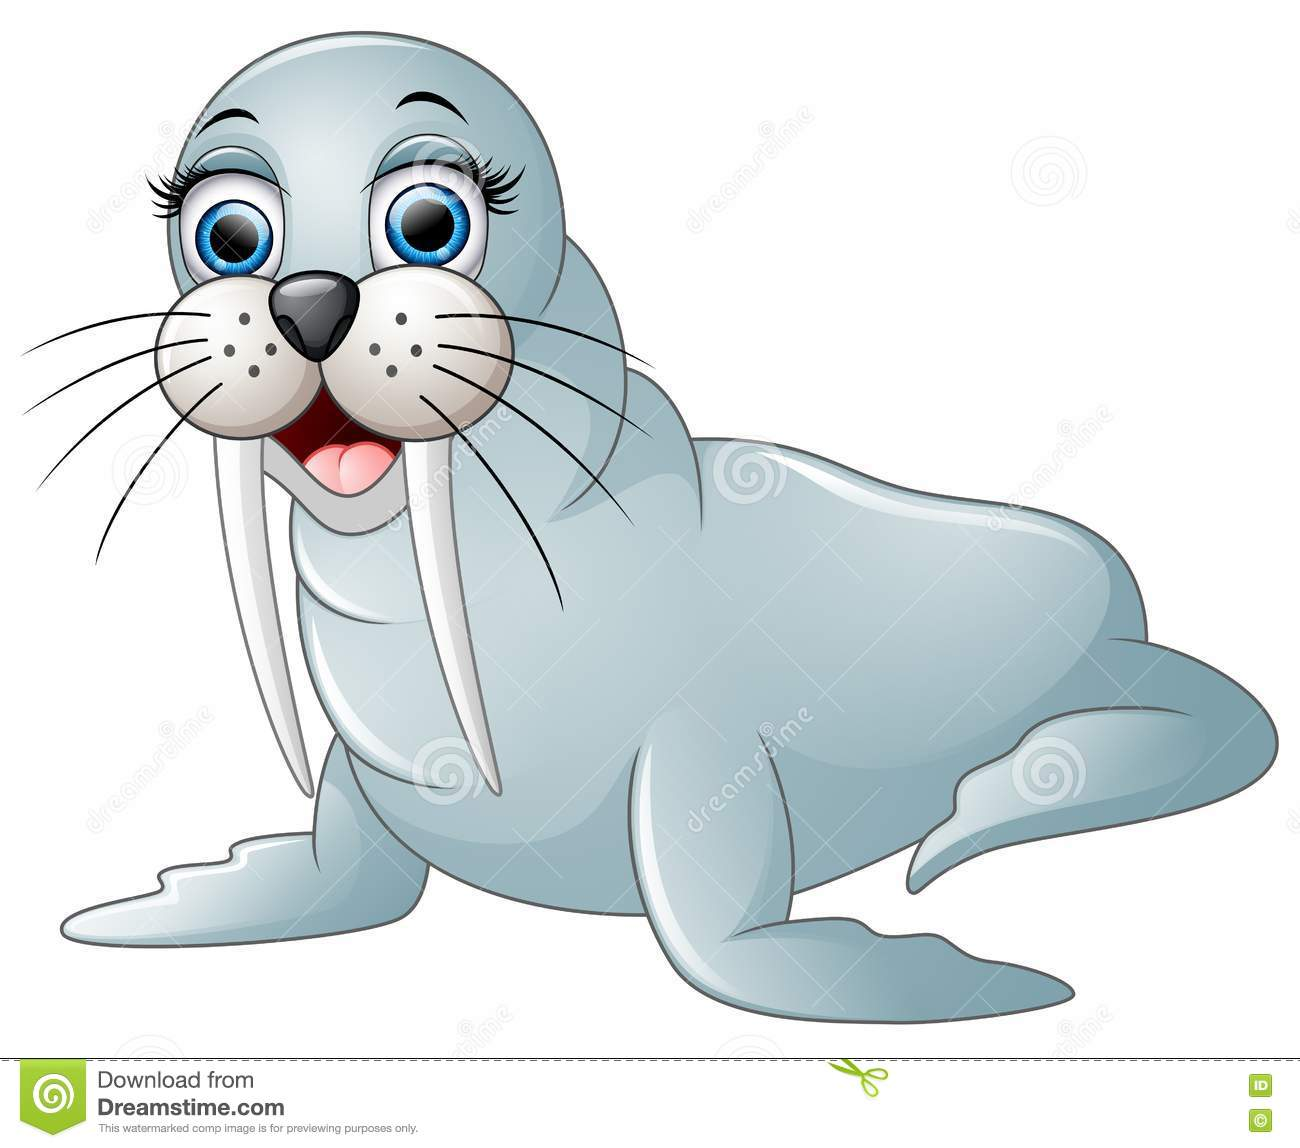 Cute walrus cartoon stock vector. Illustration of cold ...